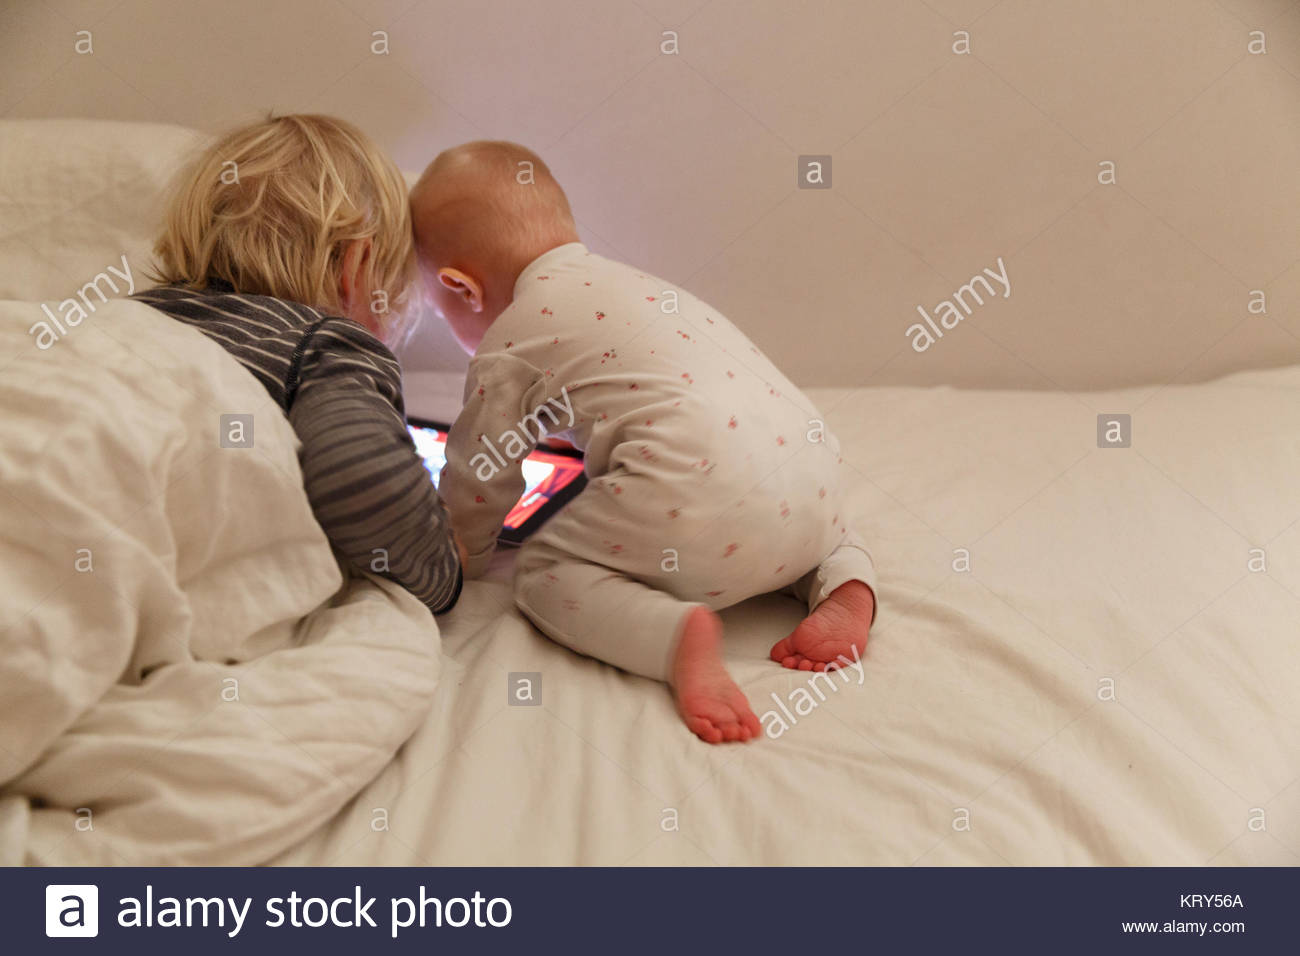 Children using a tablet in bed - Stock Image